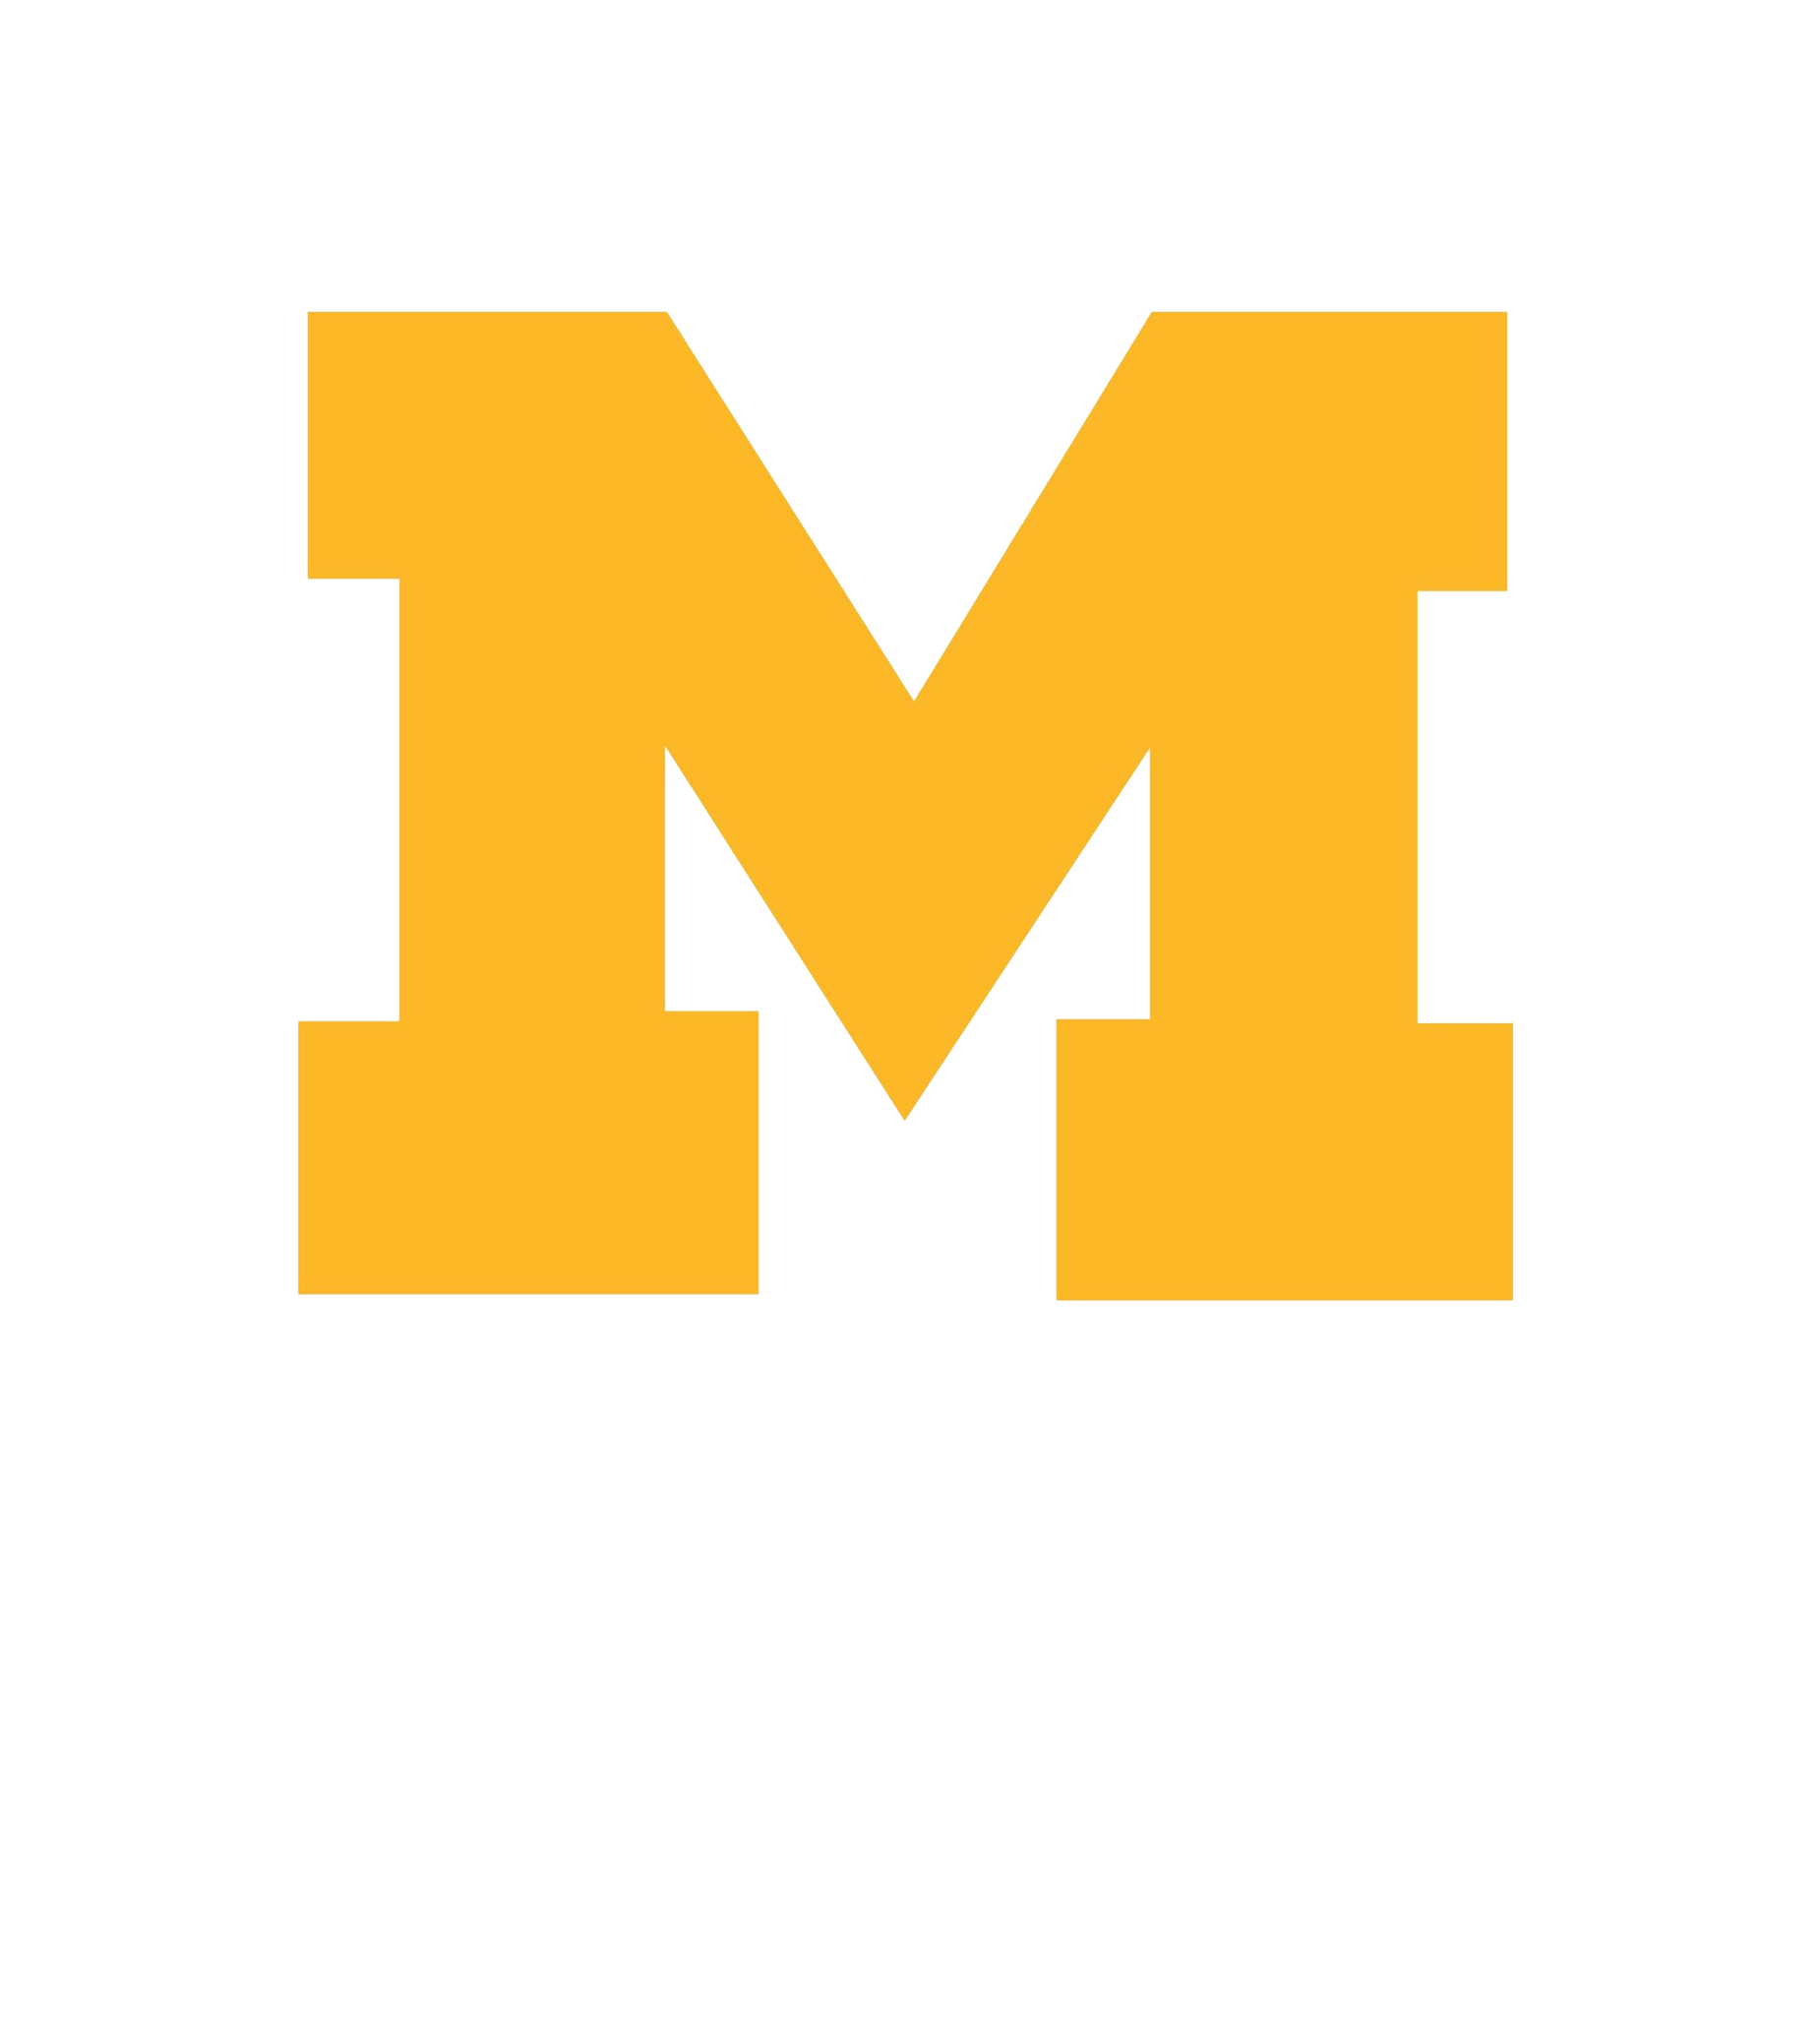 university-of-michigan-college-diabetes-network-tgnt0p-clipart.png